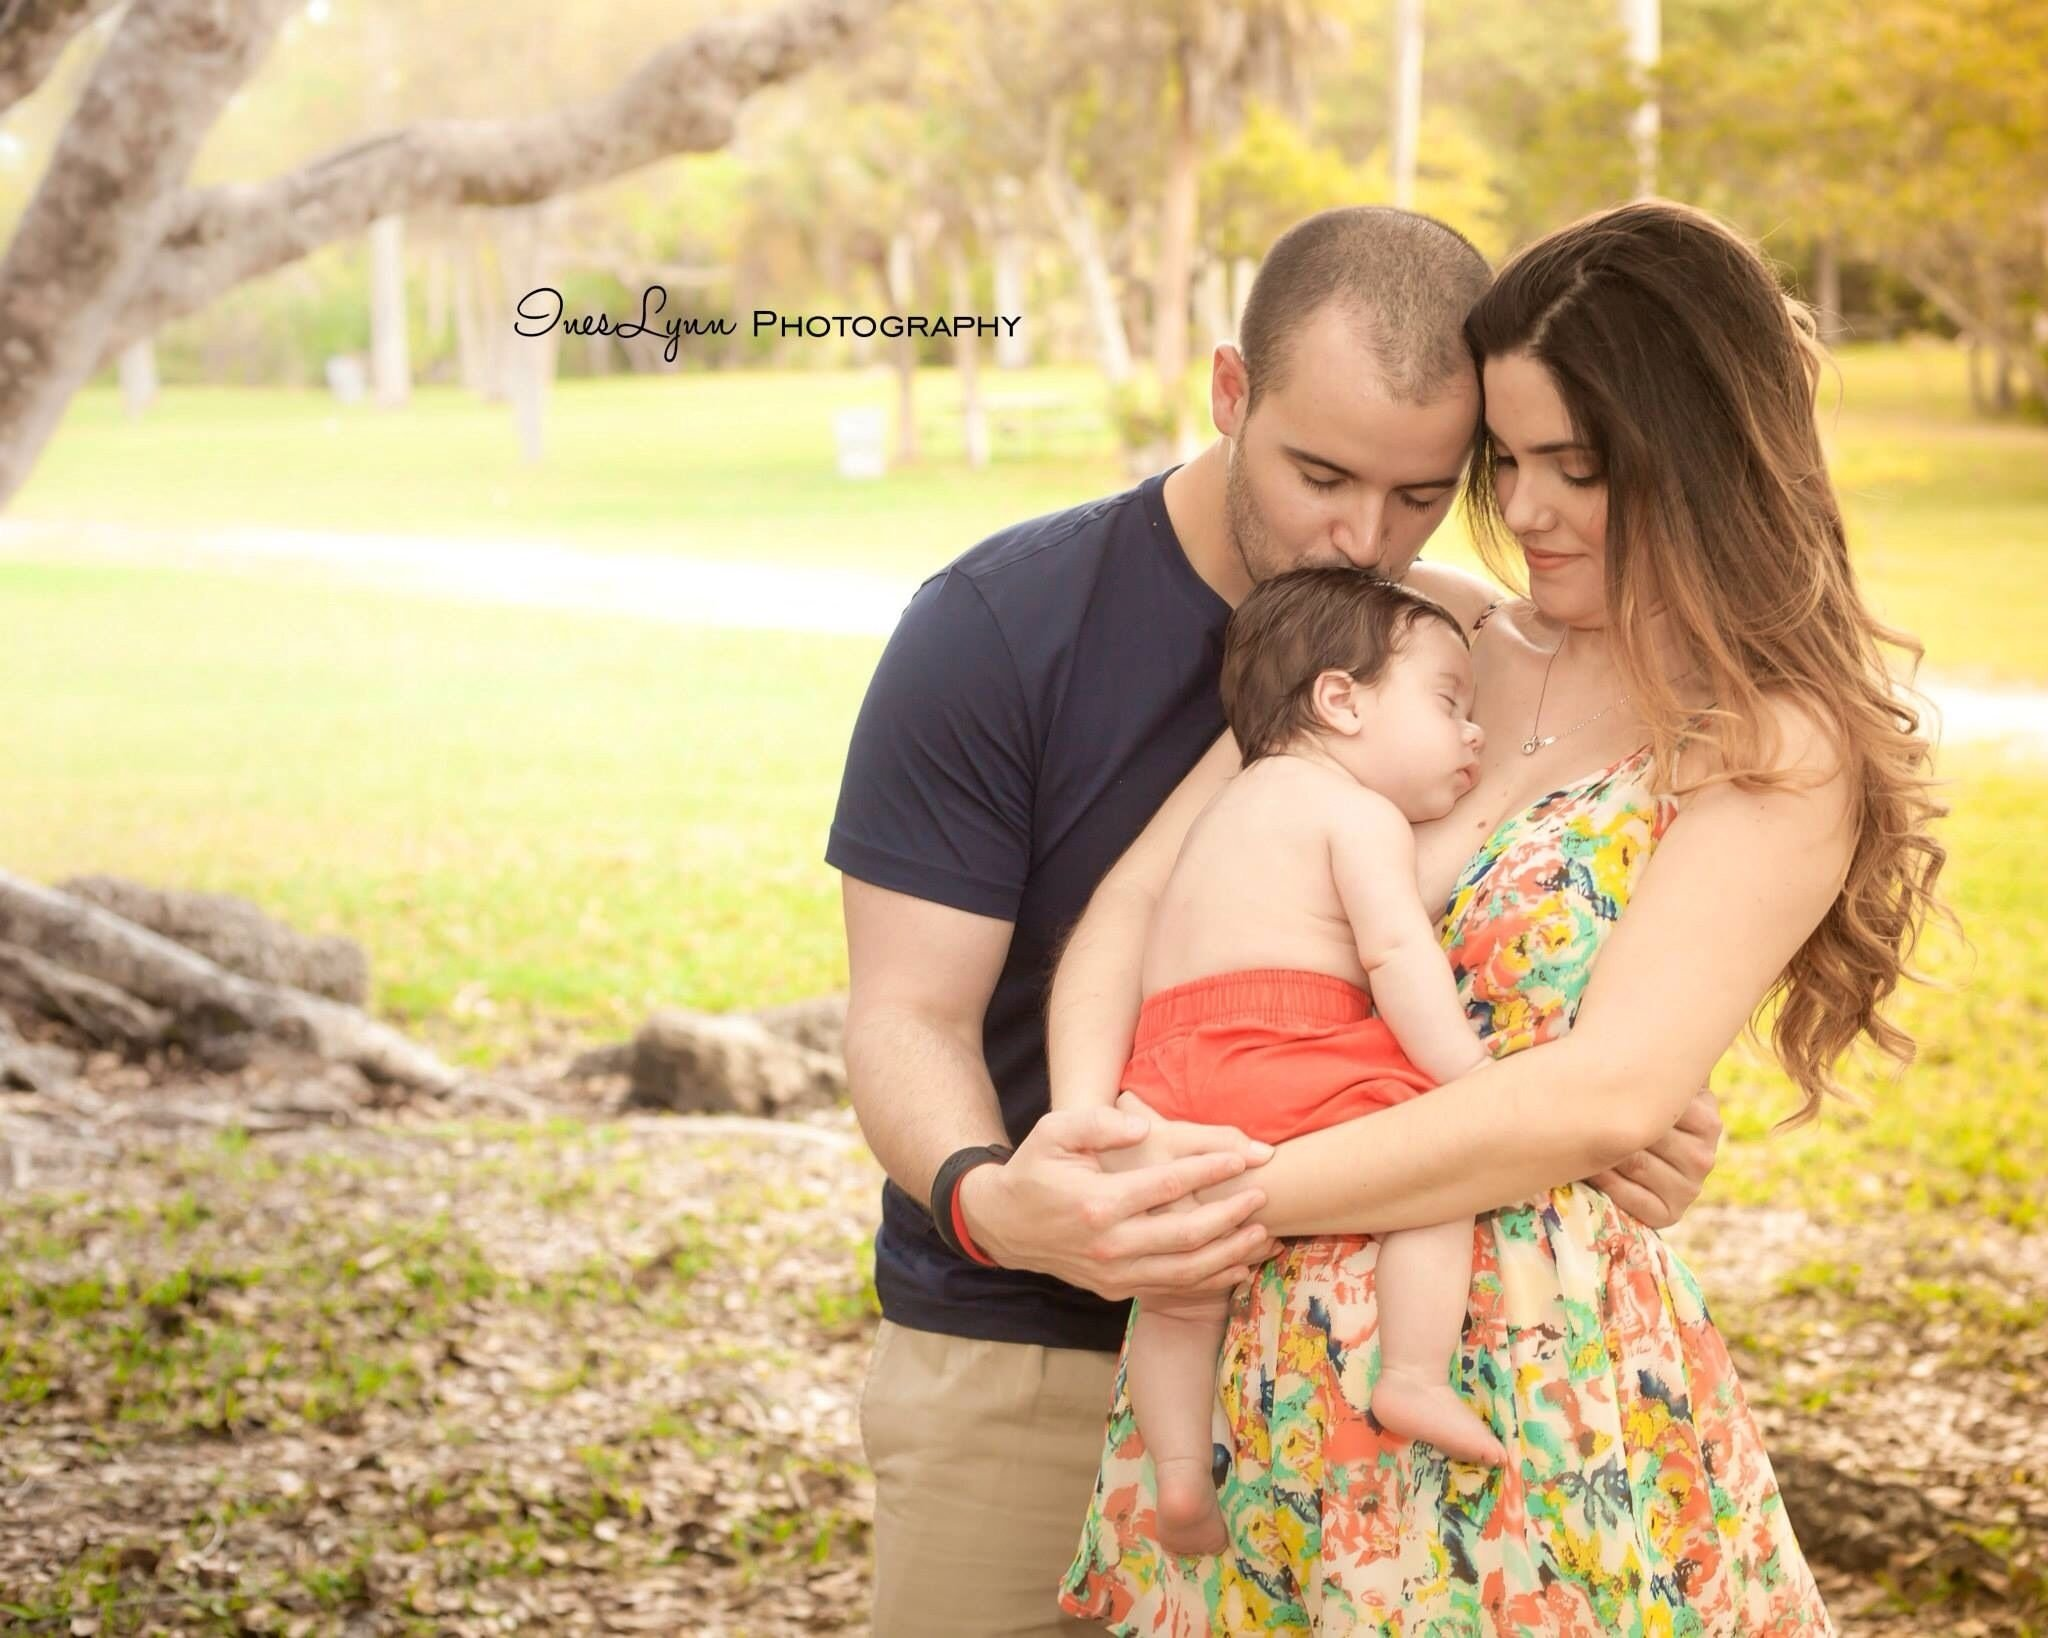 10 Beautiful Family Photo Ideas With Baby baby boy photography 3 months old baby photo ideas outdoor 8 2021